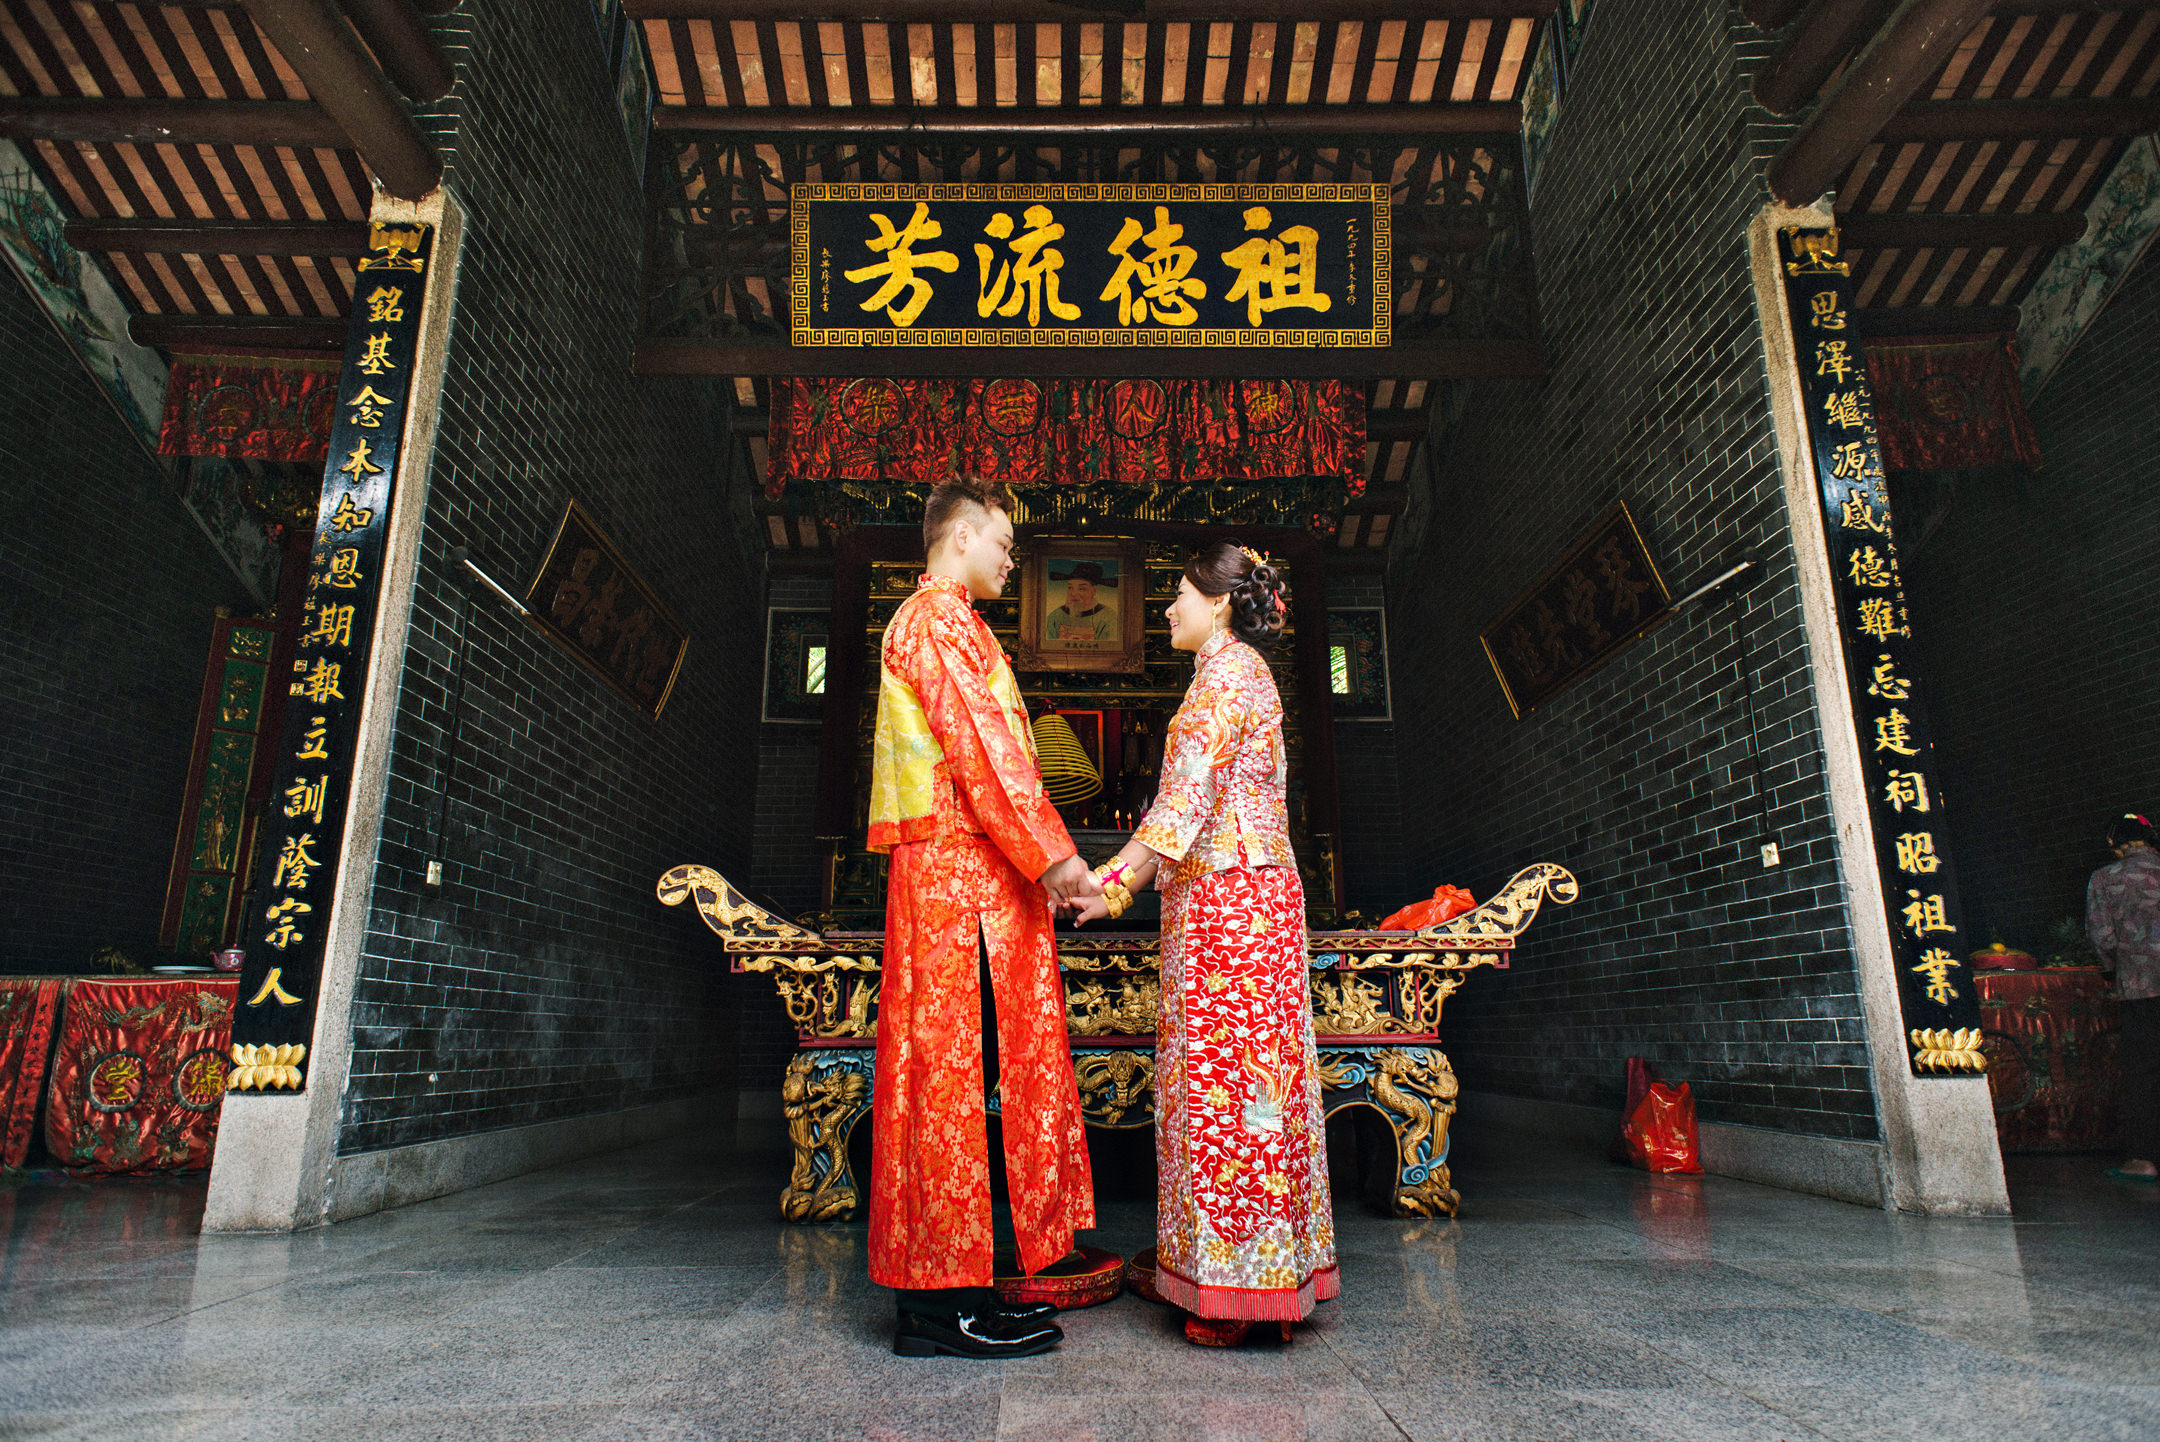 Chris_Hui_婚禮_婚紗照_pre_wedding_photography_best_116_.jpg